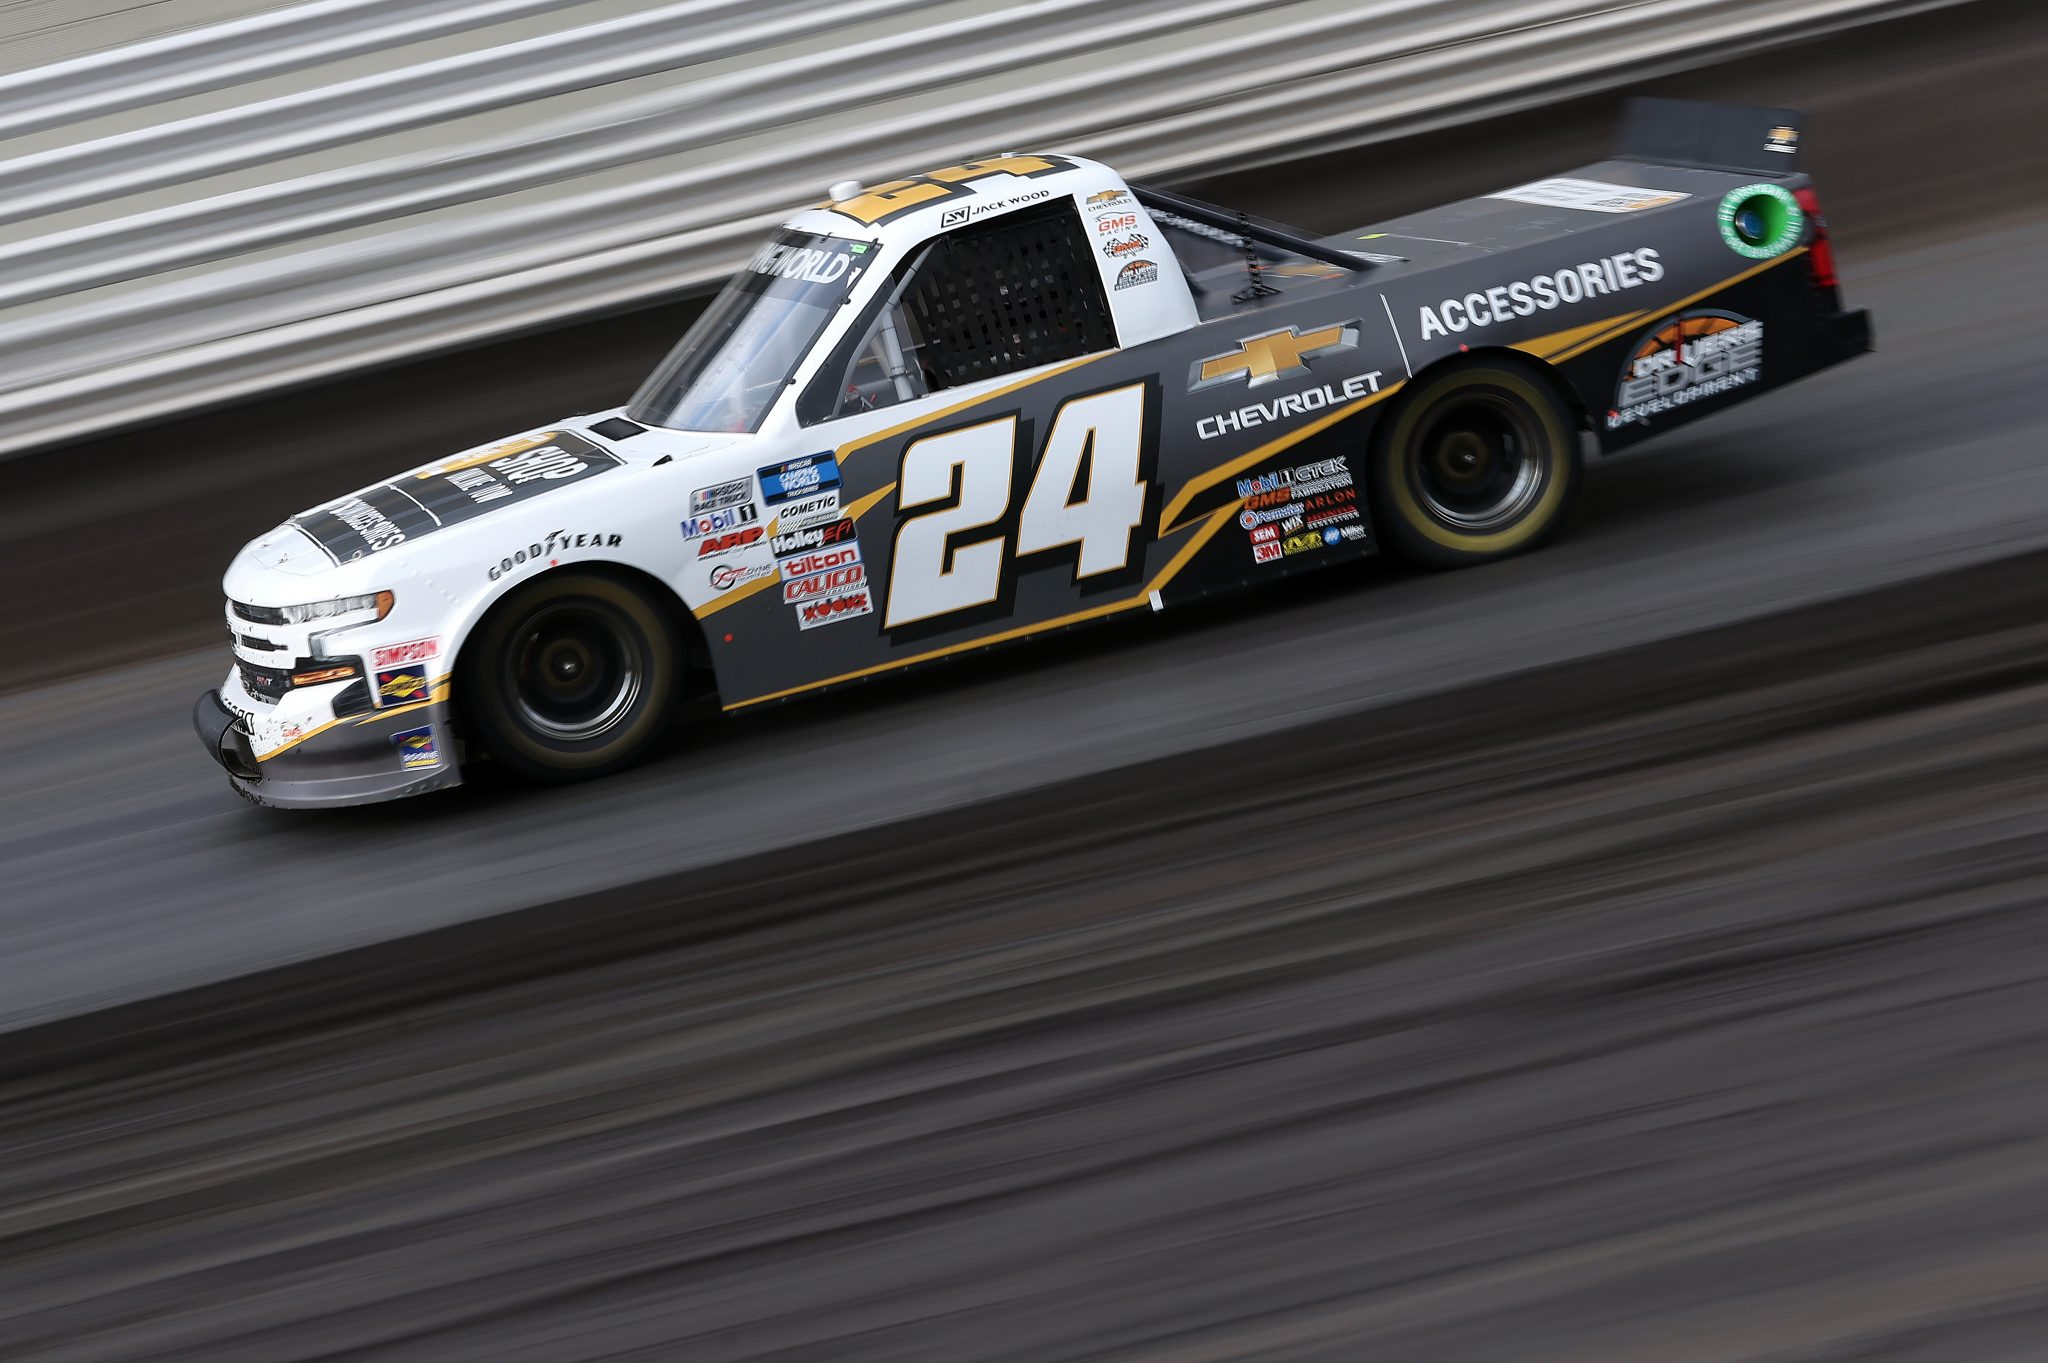 KNOXVILLE, IOWA - JULY 09: Jack Wood, driver of the #24 Chevy Accessories Chevrolet, drives during qualifying for the NASCAR Camping World Truck Series Corn Belt 150 presented by Premier Chevy Dealers at Knoxville Raceway on July 09, 2021 in Knoxville, Iowa. (Photo by James Gilbert/Getty Images) | Getty Images